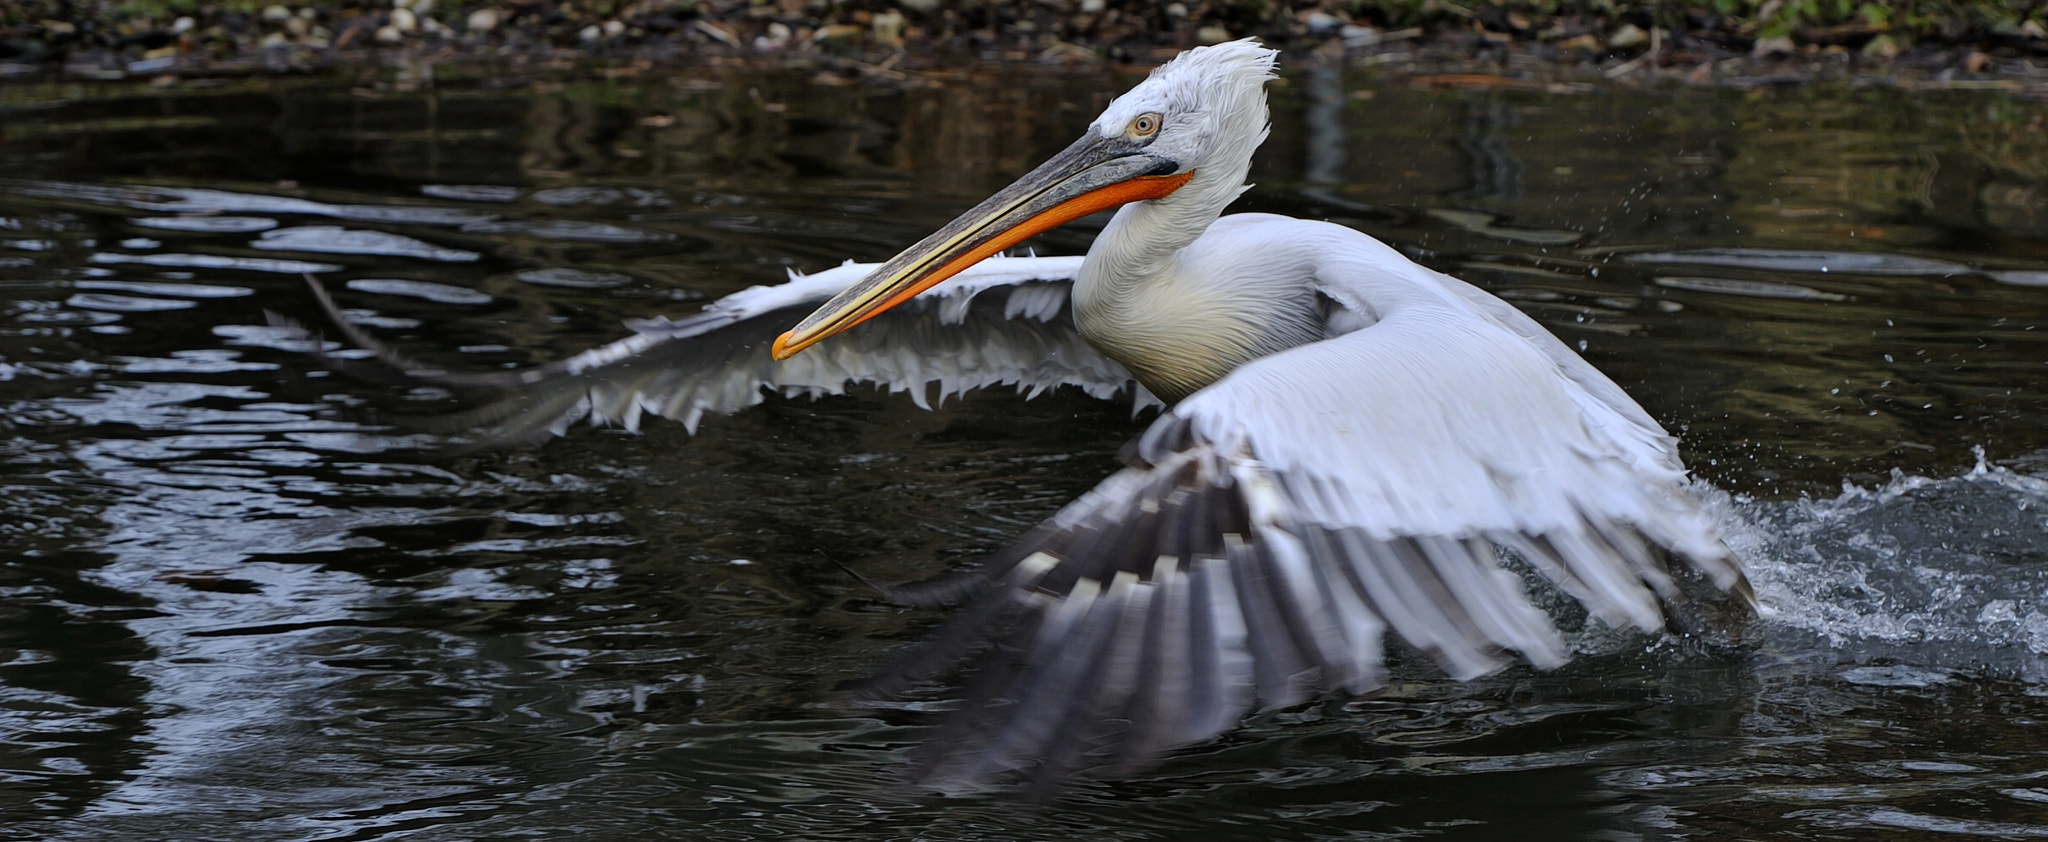 Photograph Pelican Take Off by Josef Gelernter on 500px